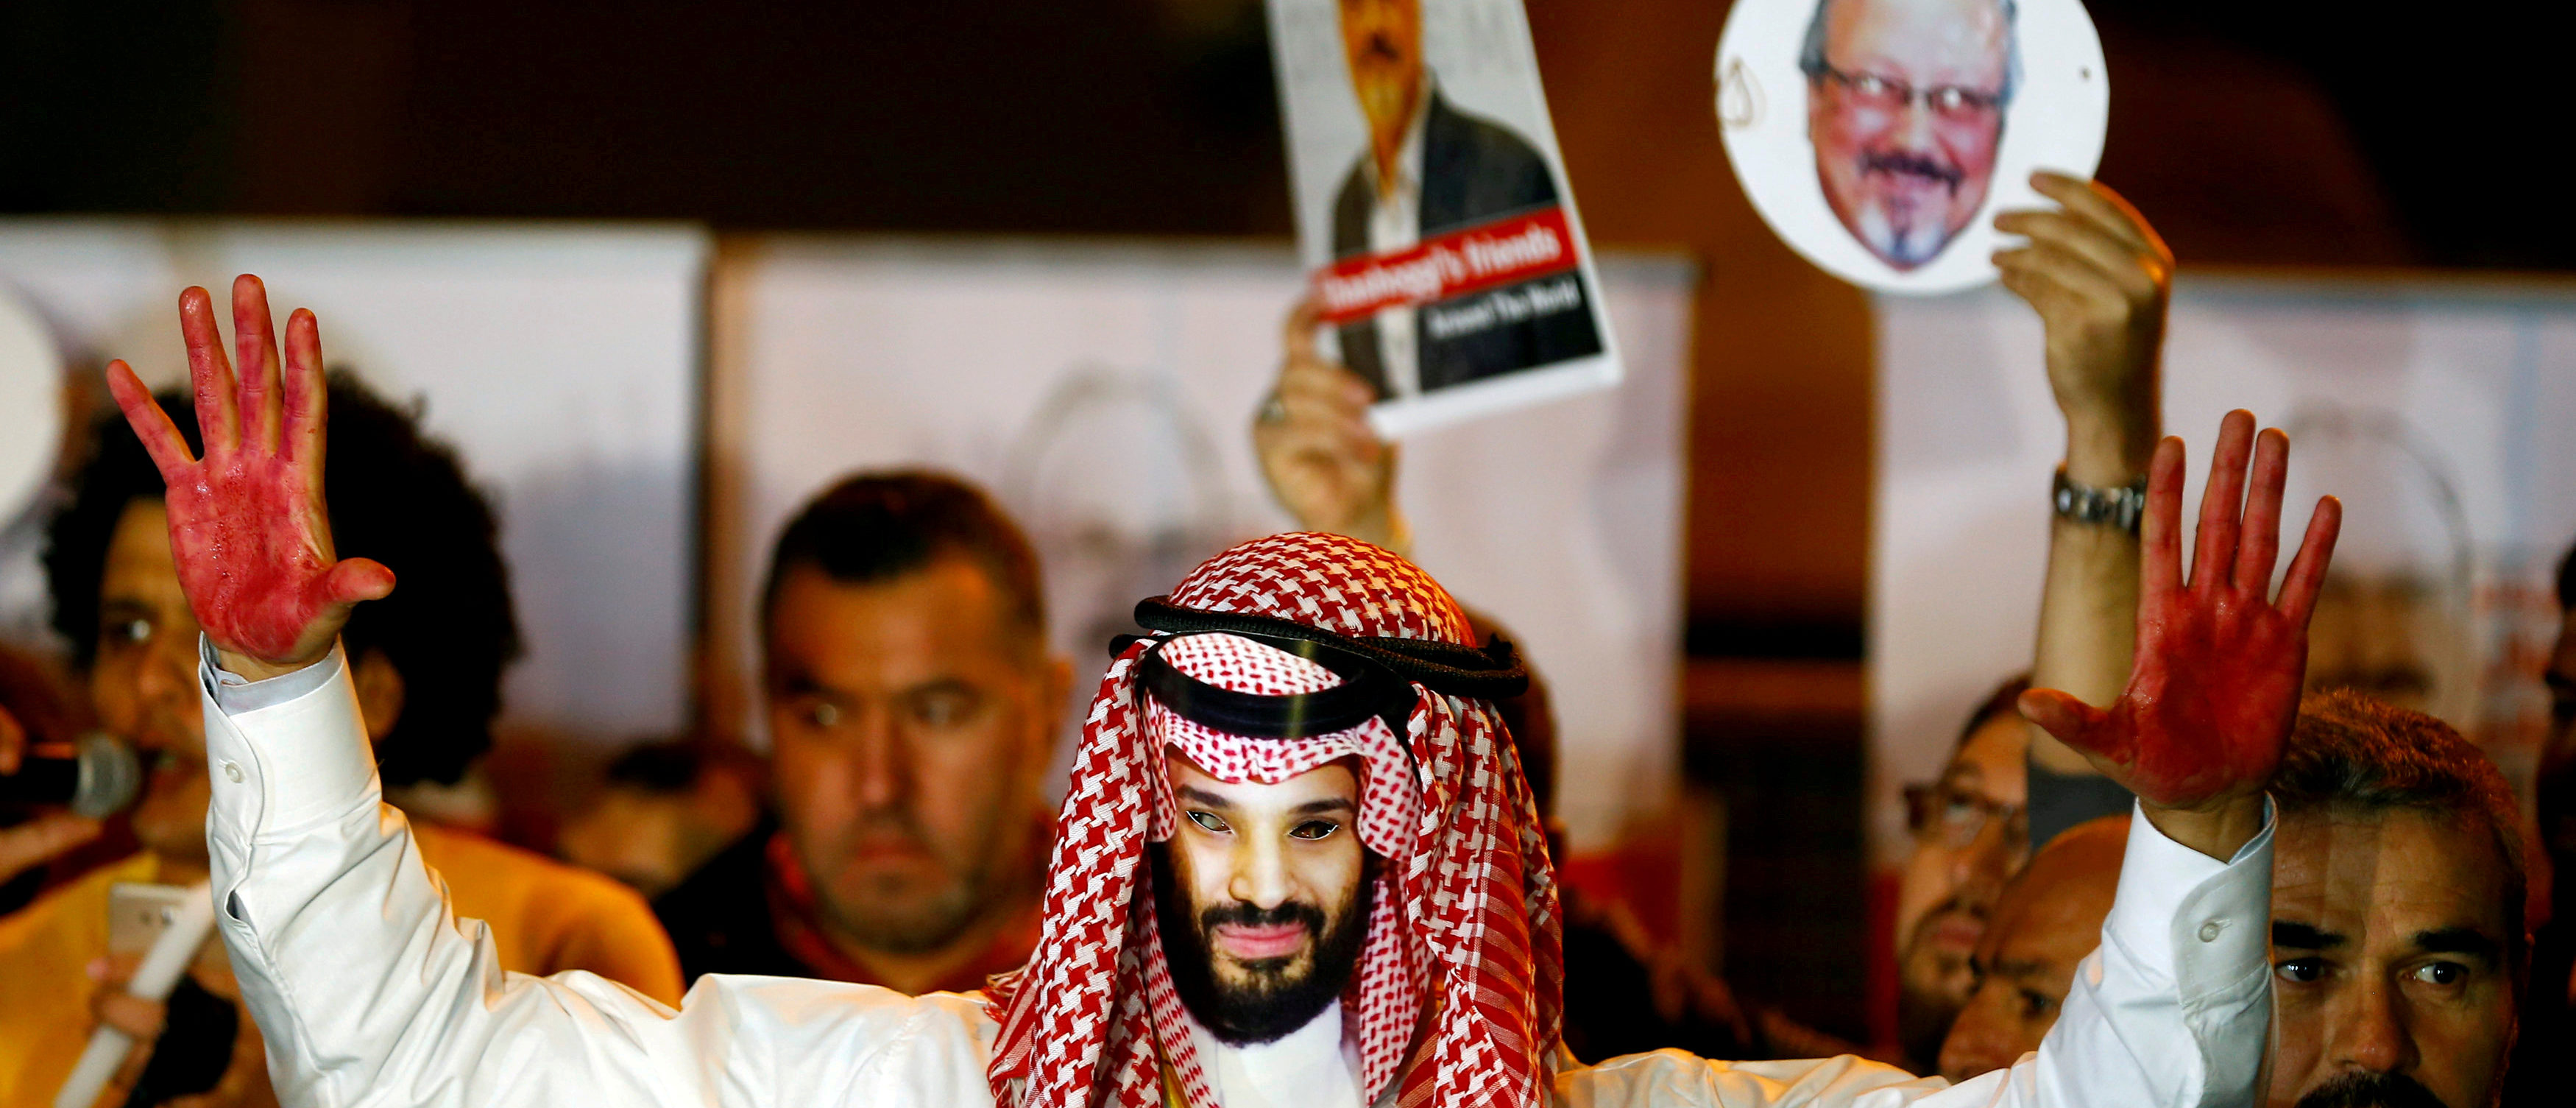 A demonstrator wearing a mask of Saudi Crown Prince Mohammed bin Salman attends a protest outside the Saudi Arabia consulate in Istanbul, Turkey October 25, 2018. REUTERS/Osman Orsal